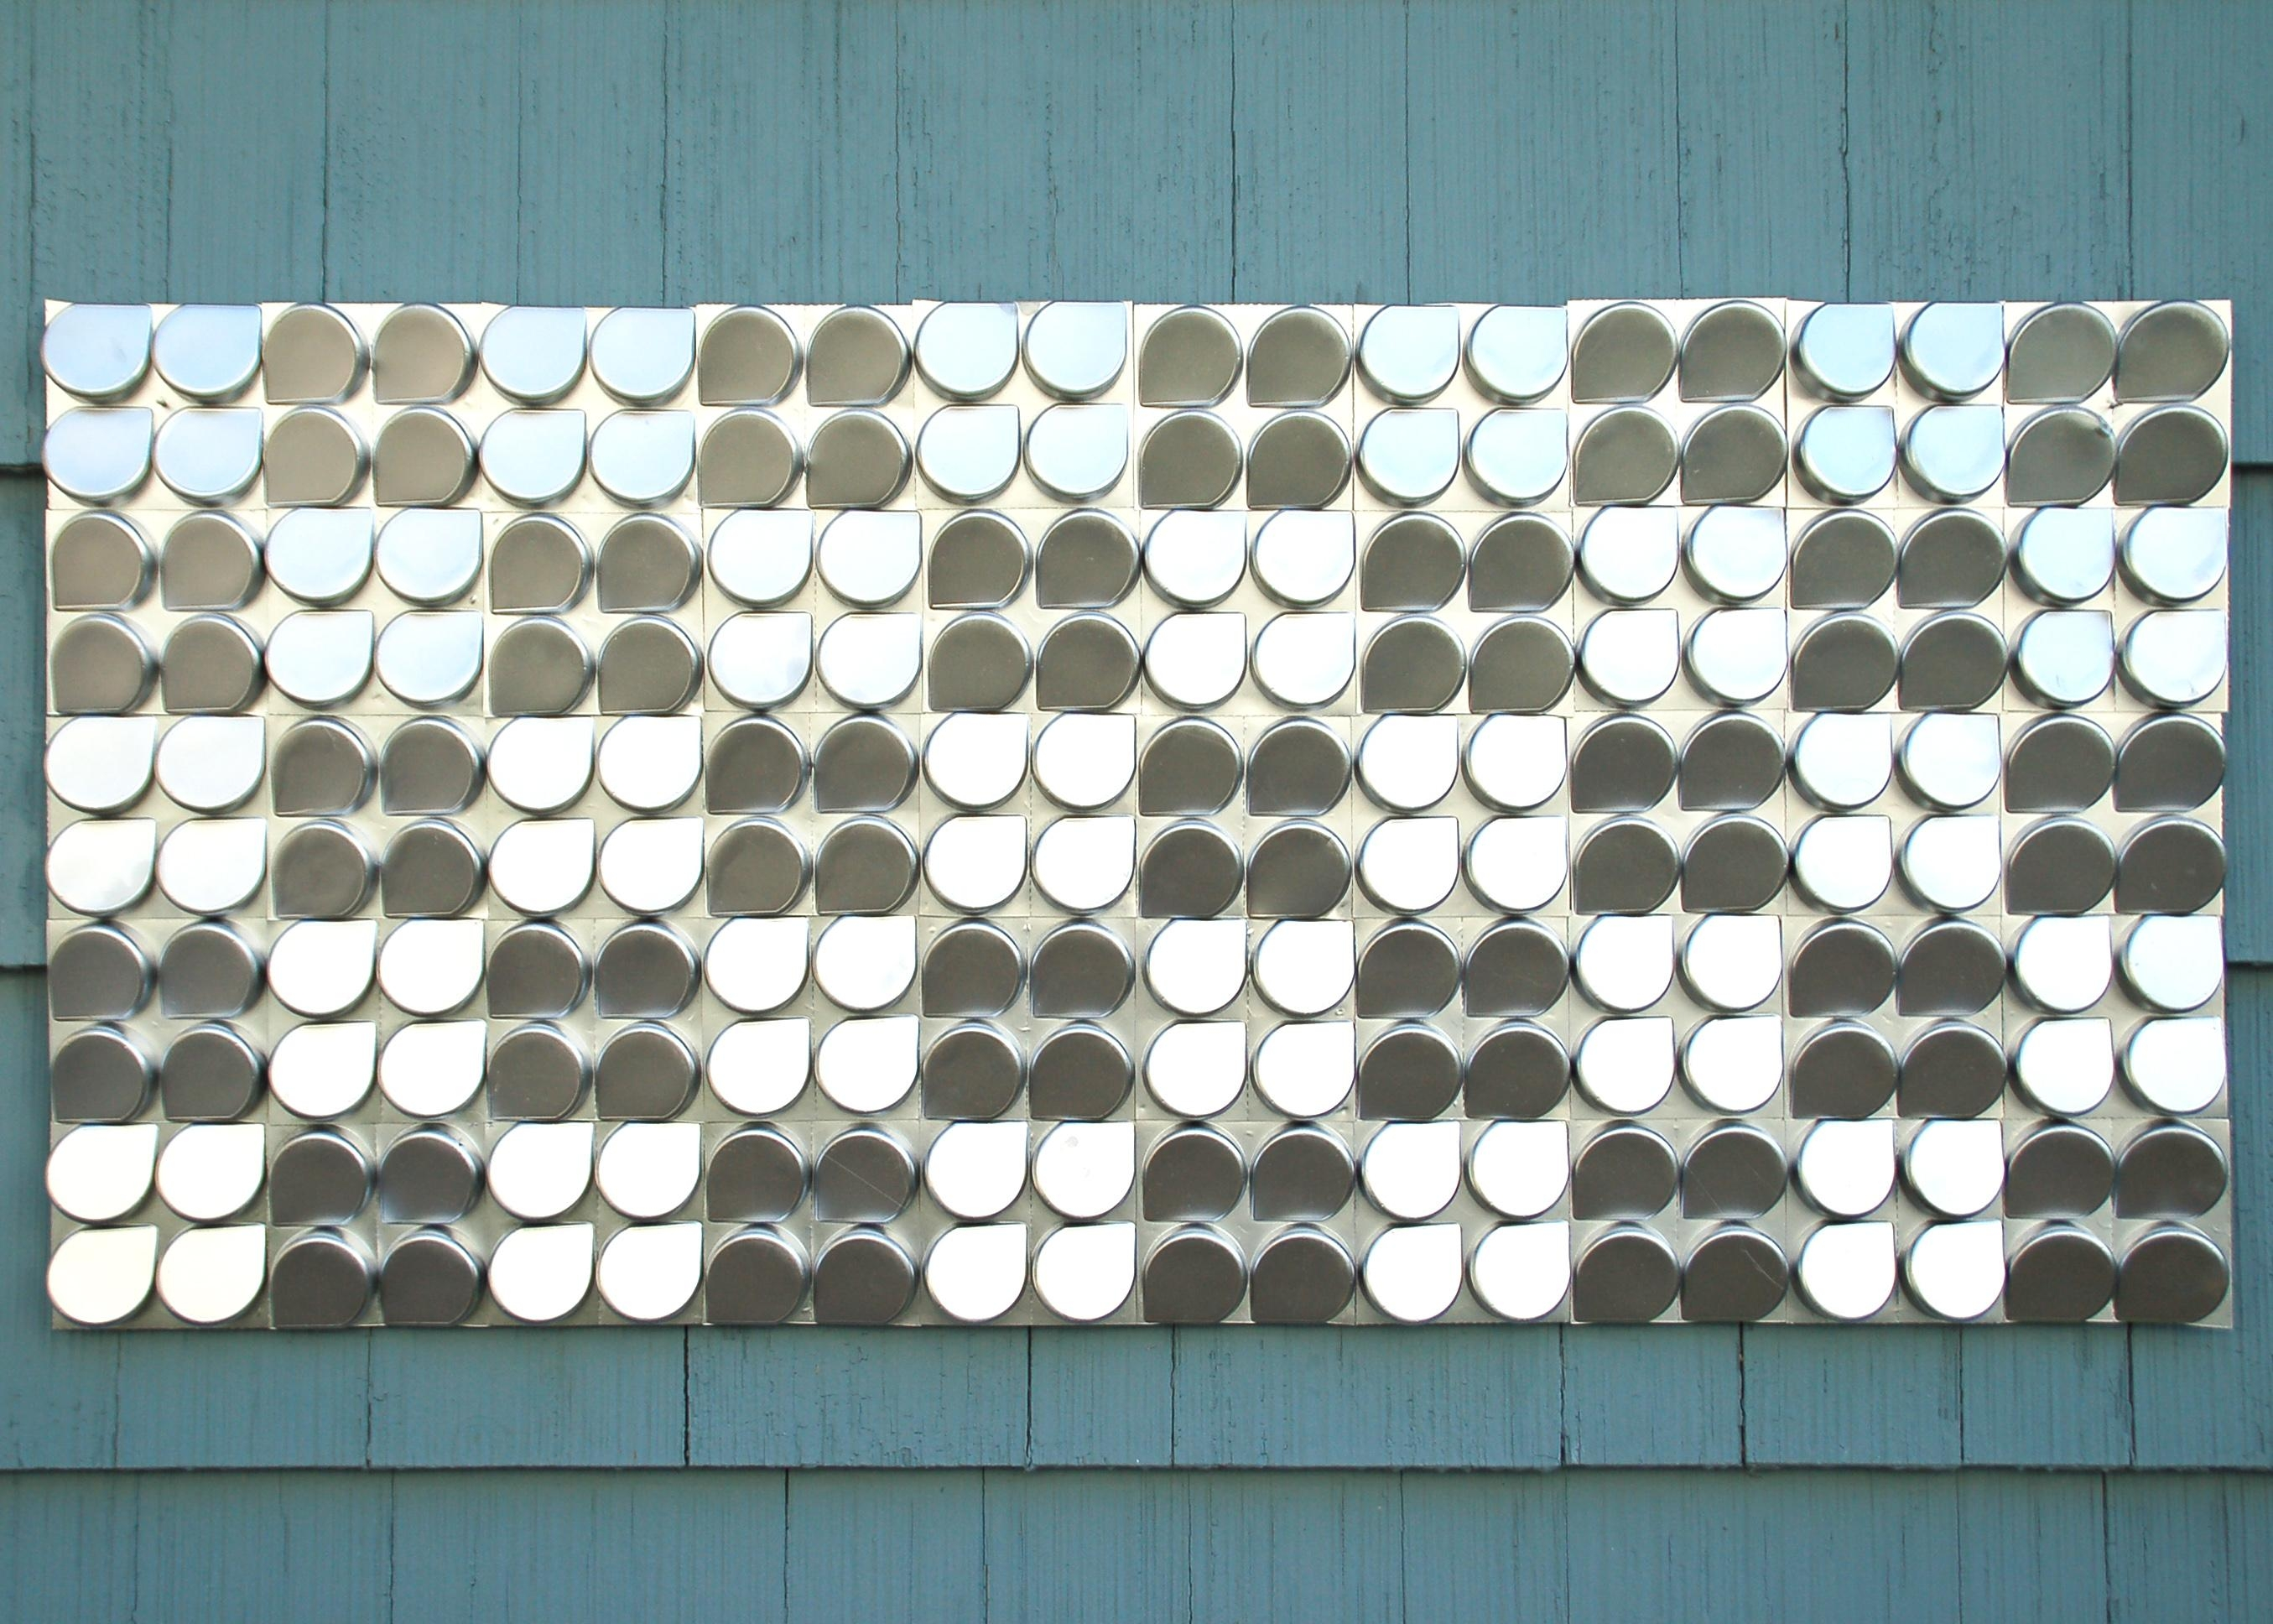 Recycled Art | Ideas Realized Throughout Recycled Wall Art (Image 13 of 20)